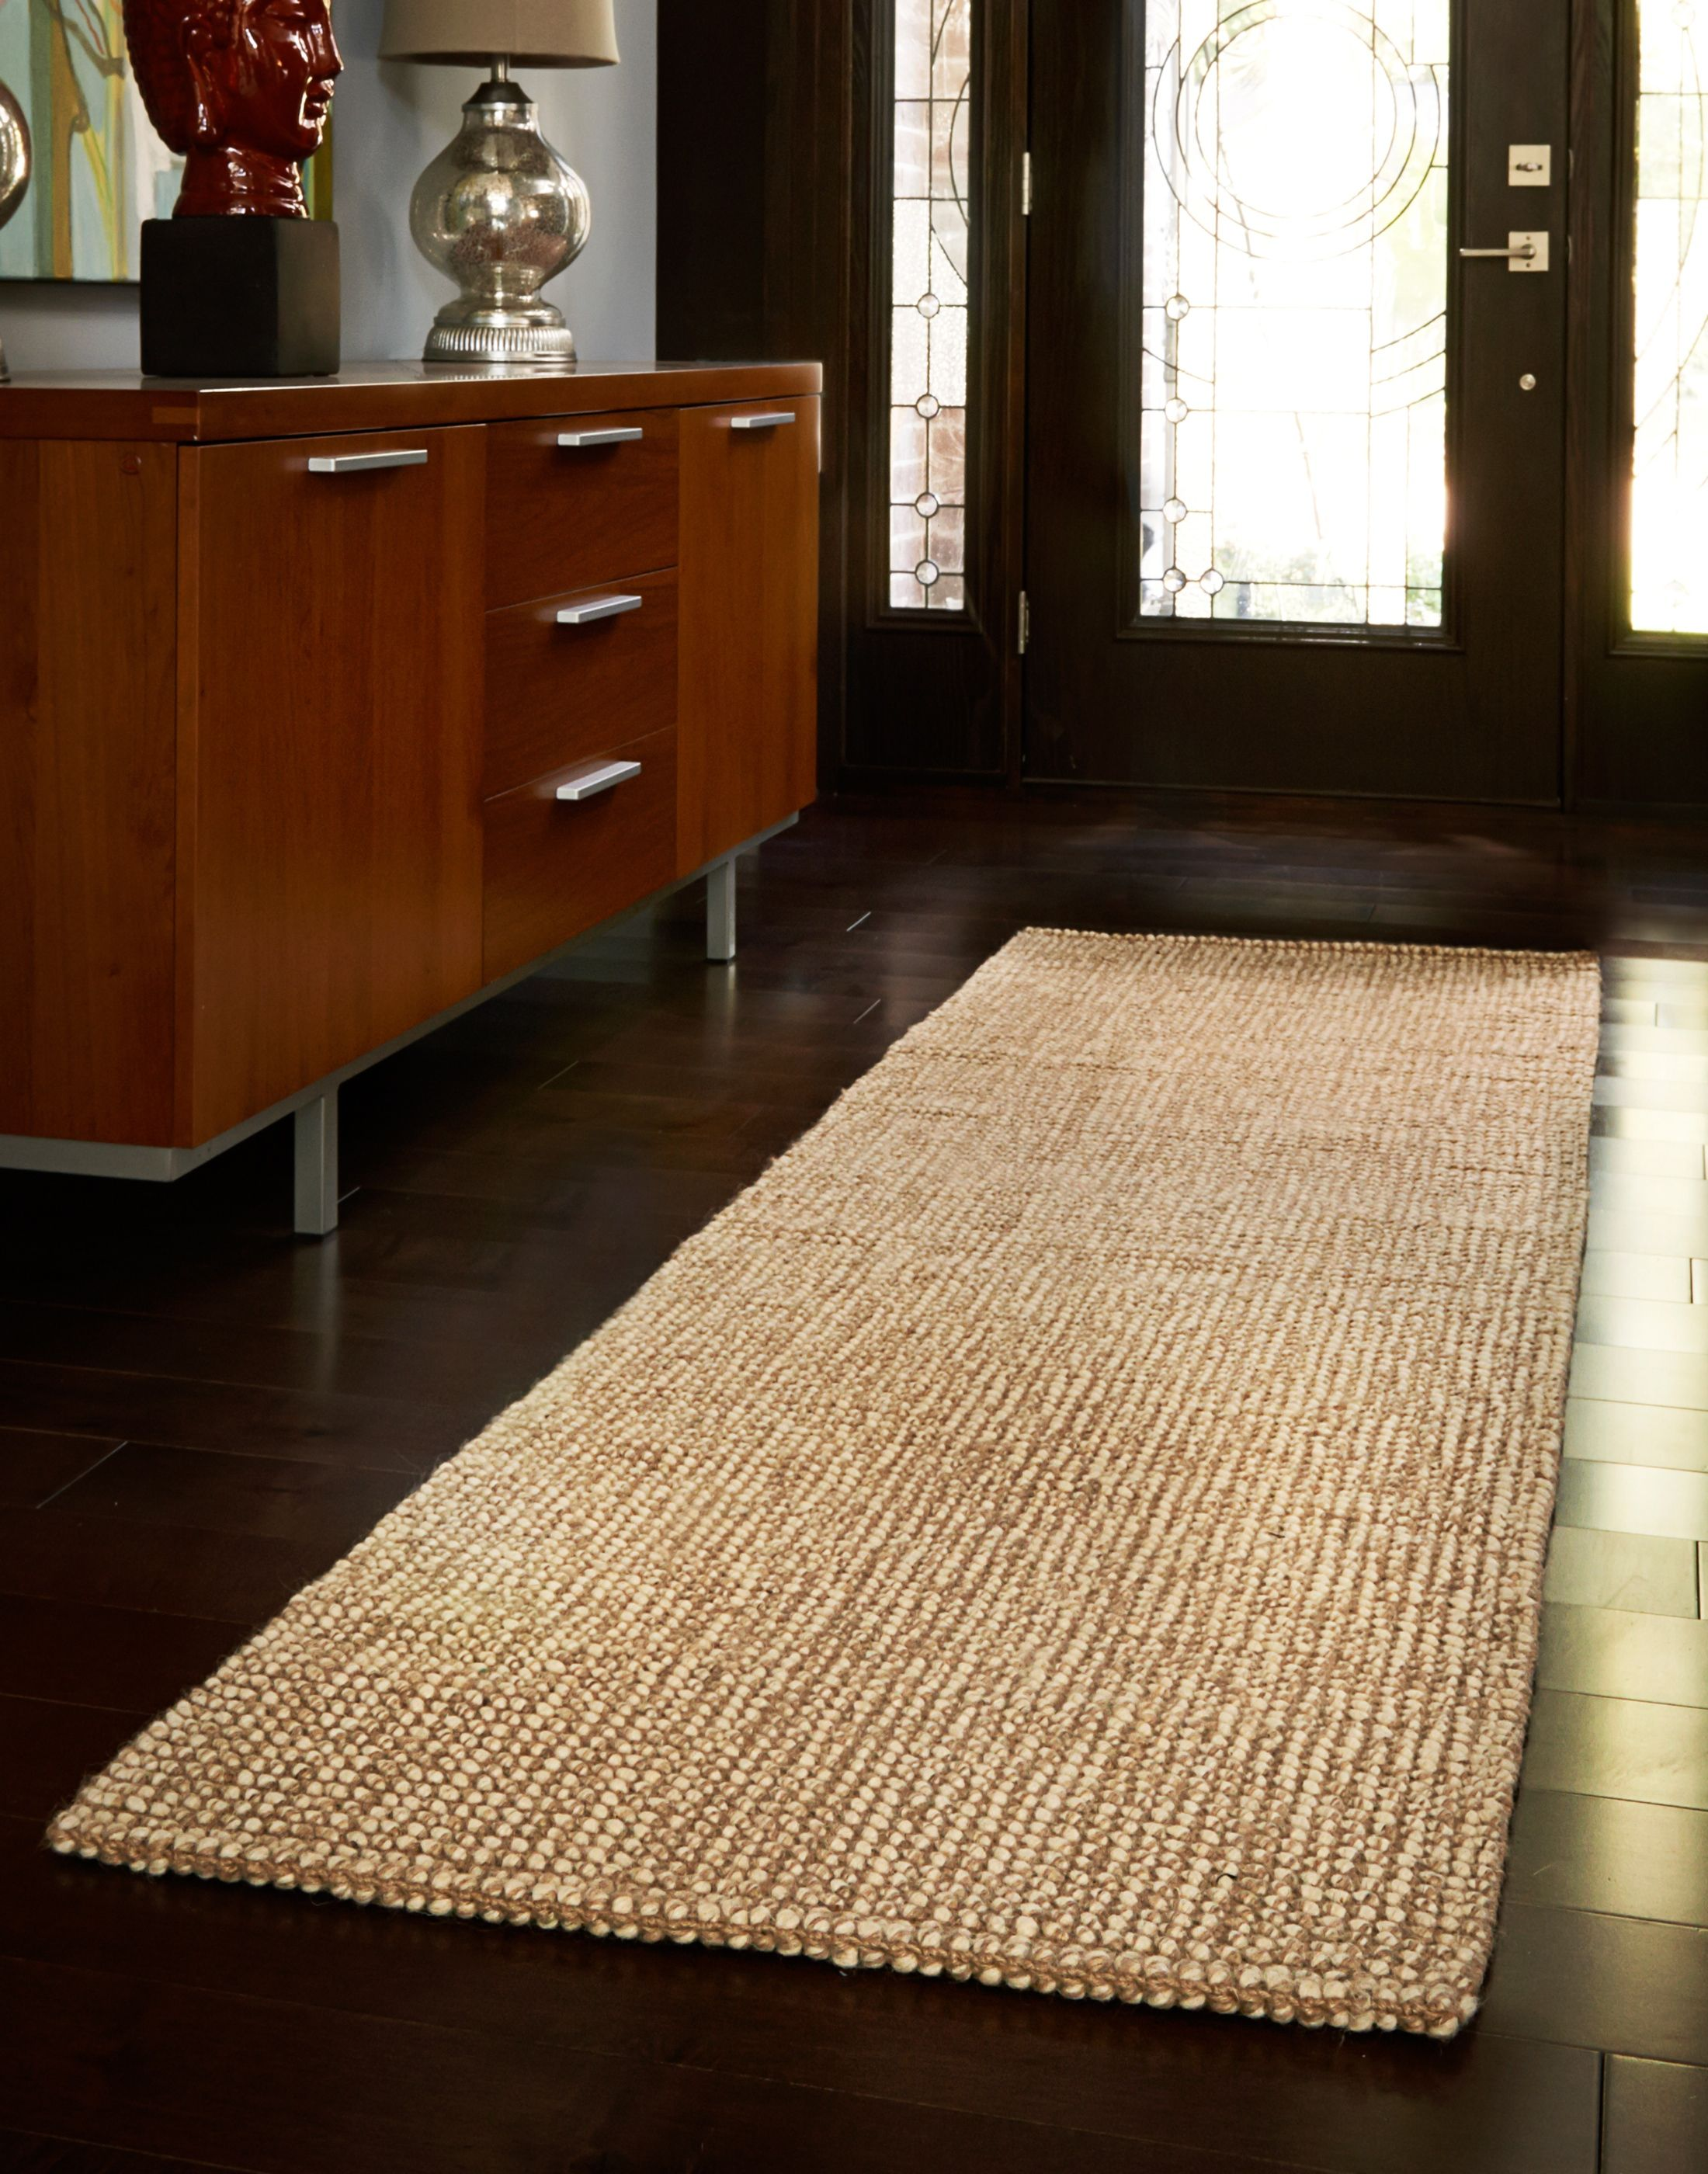 nice brown Striped Runner Rug Entryway Hallway Home decor for